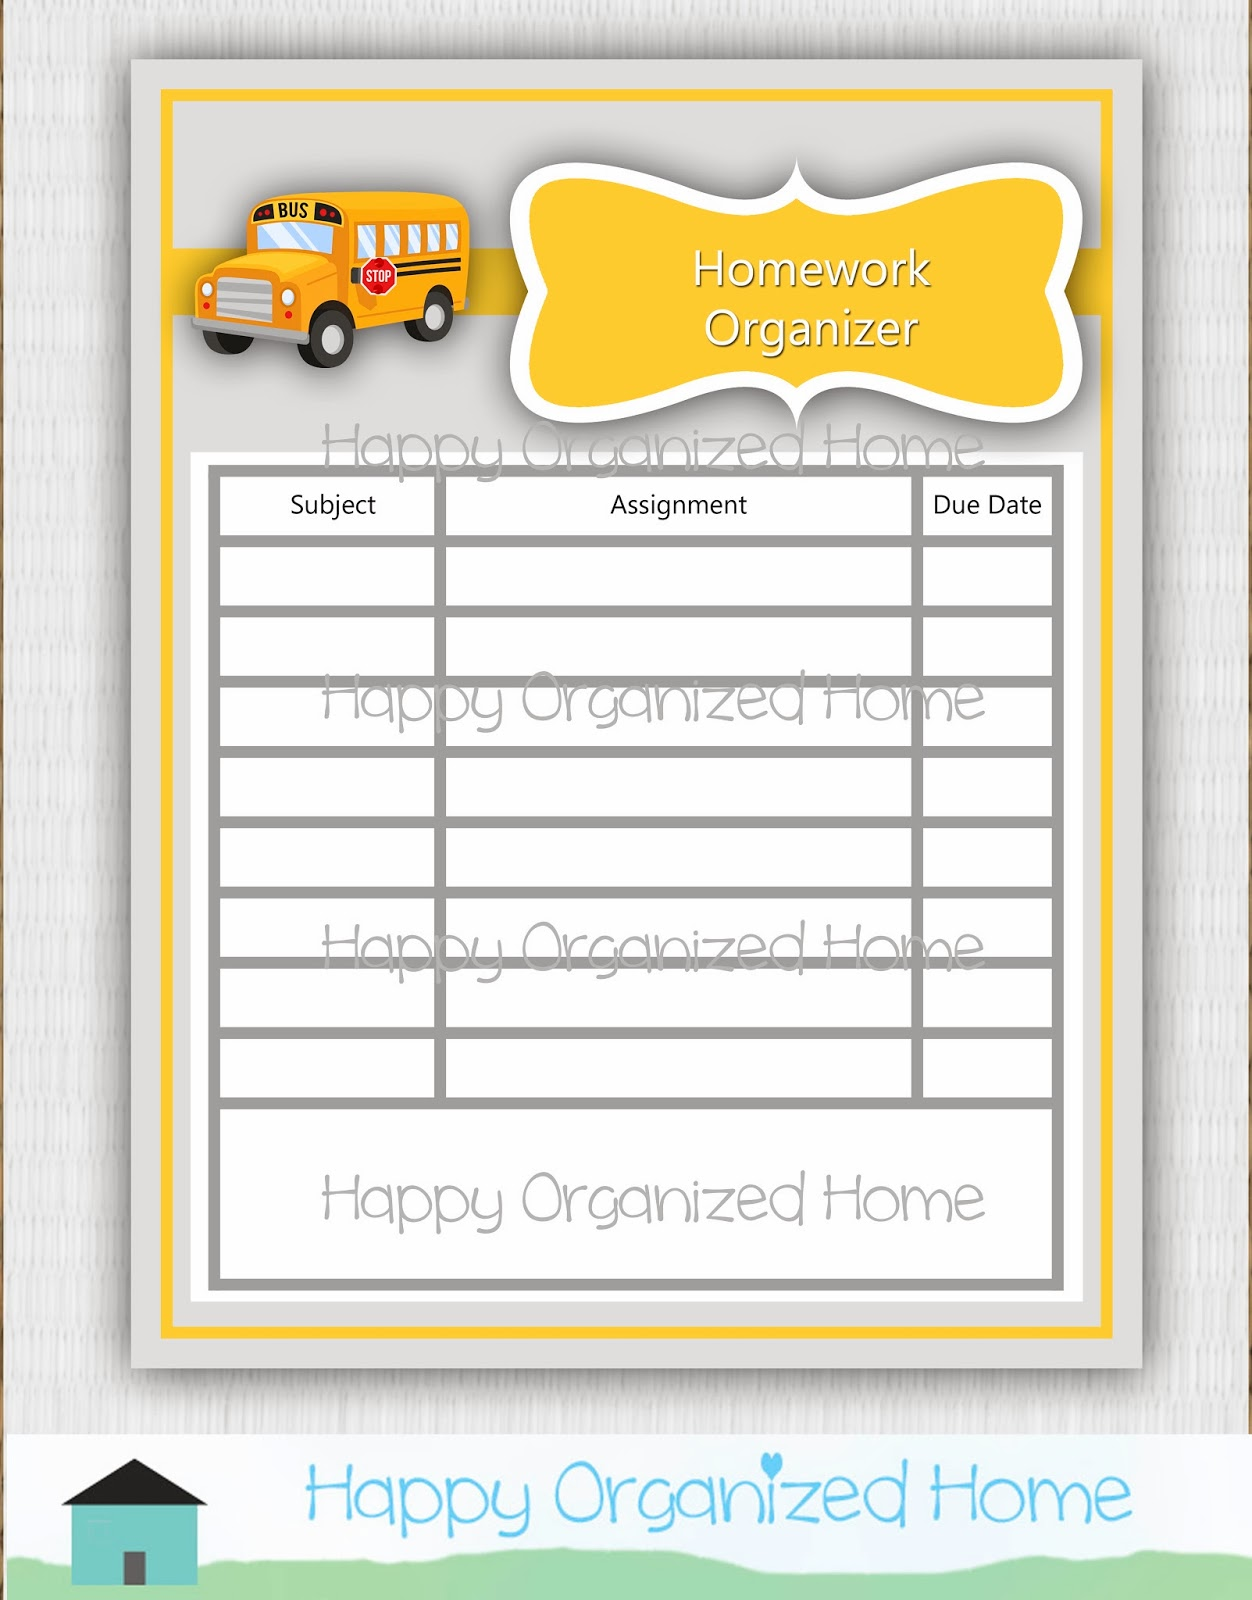 https://www.etsy.com/listing/153178531/homework-organizer-planner-for-boys-kids?ref=shop_home_active_3&ga_search_query=homework%2Borganizer